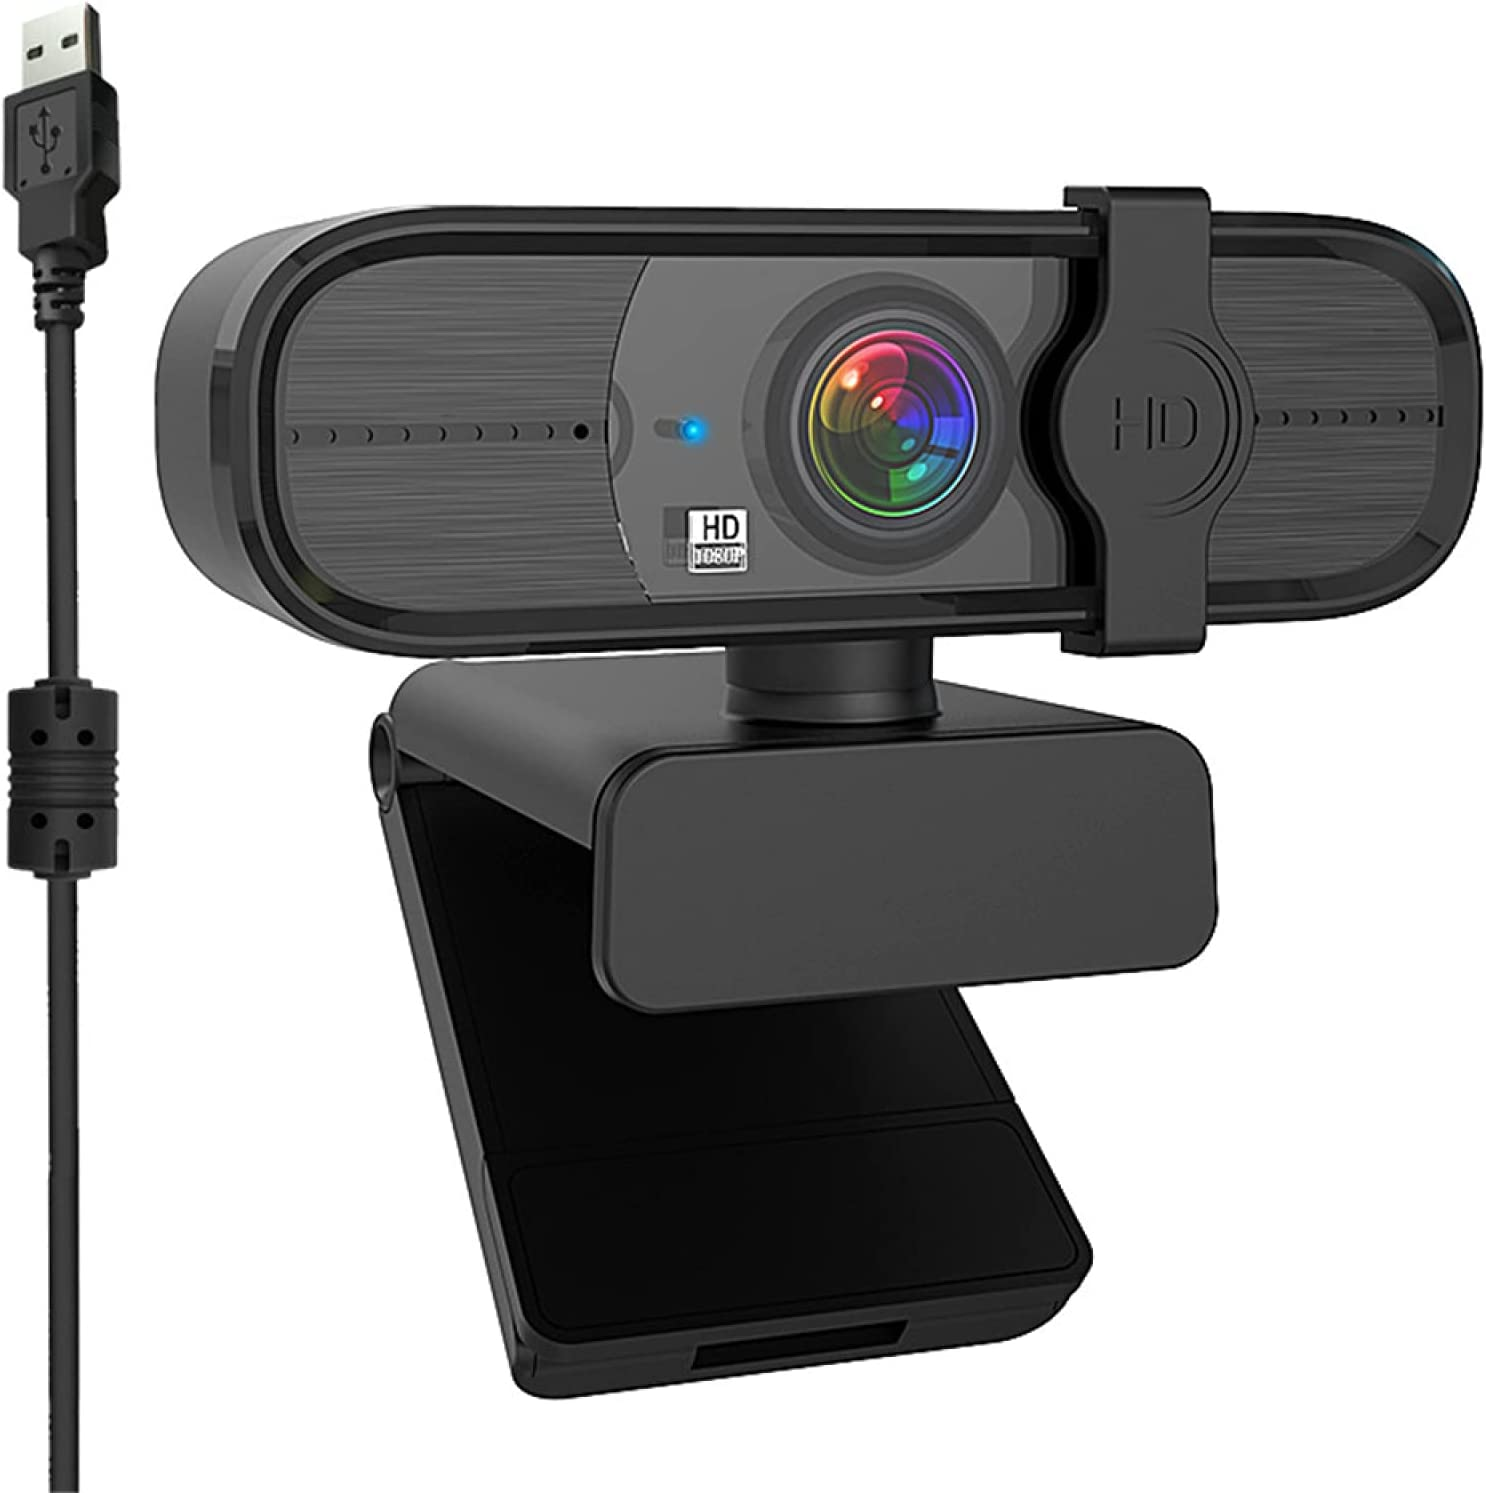 Attention brand ASDAD Raleigh Mall The New HD USB Webcam Autofocus Micr Web 1080p Camera with